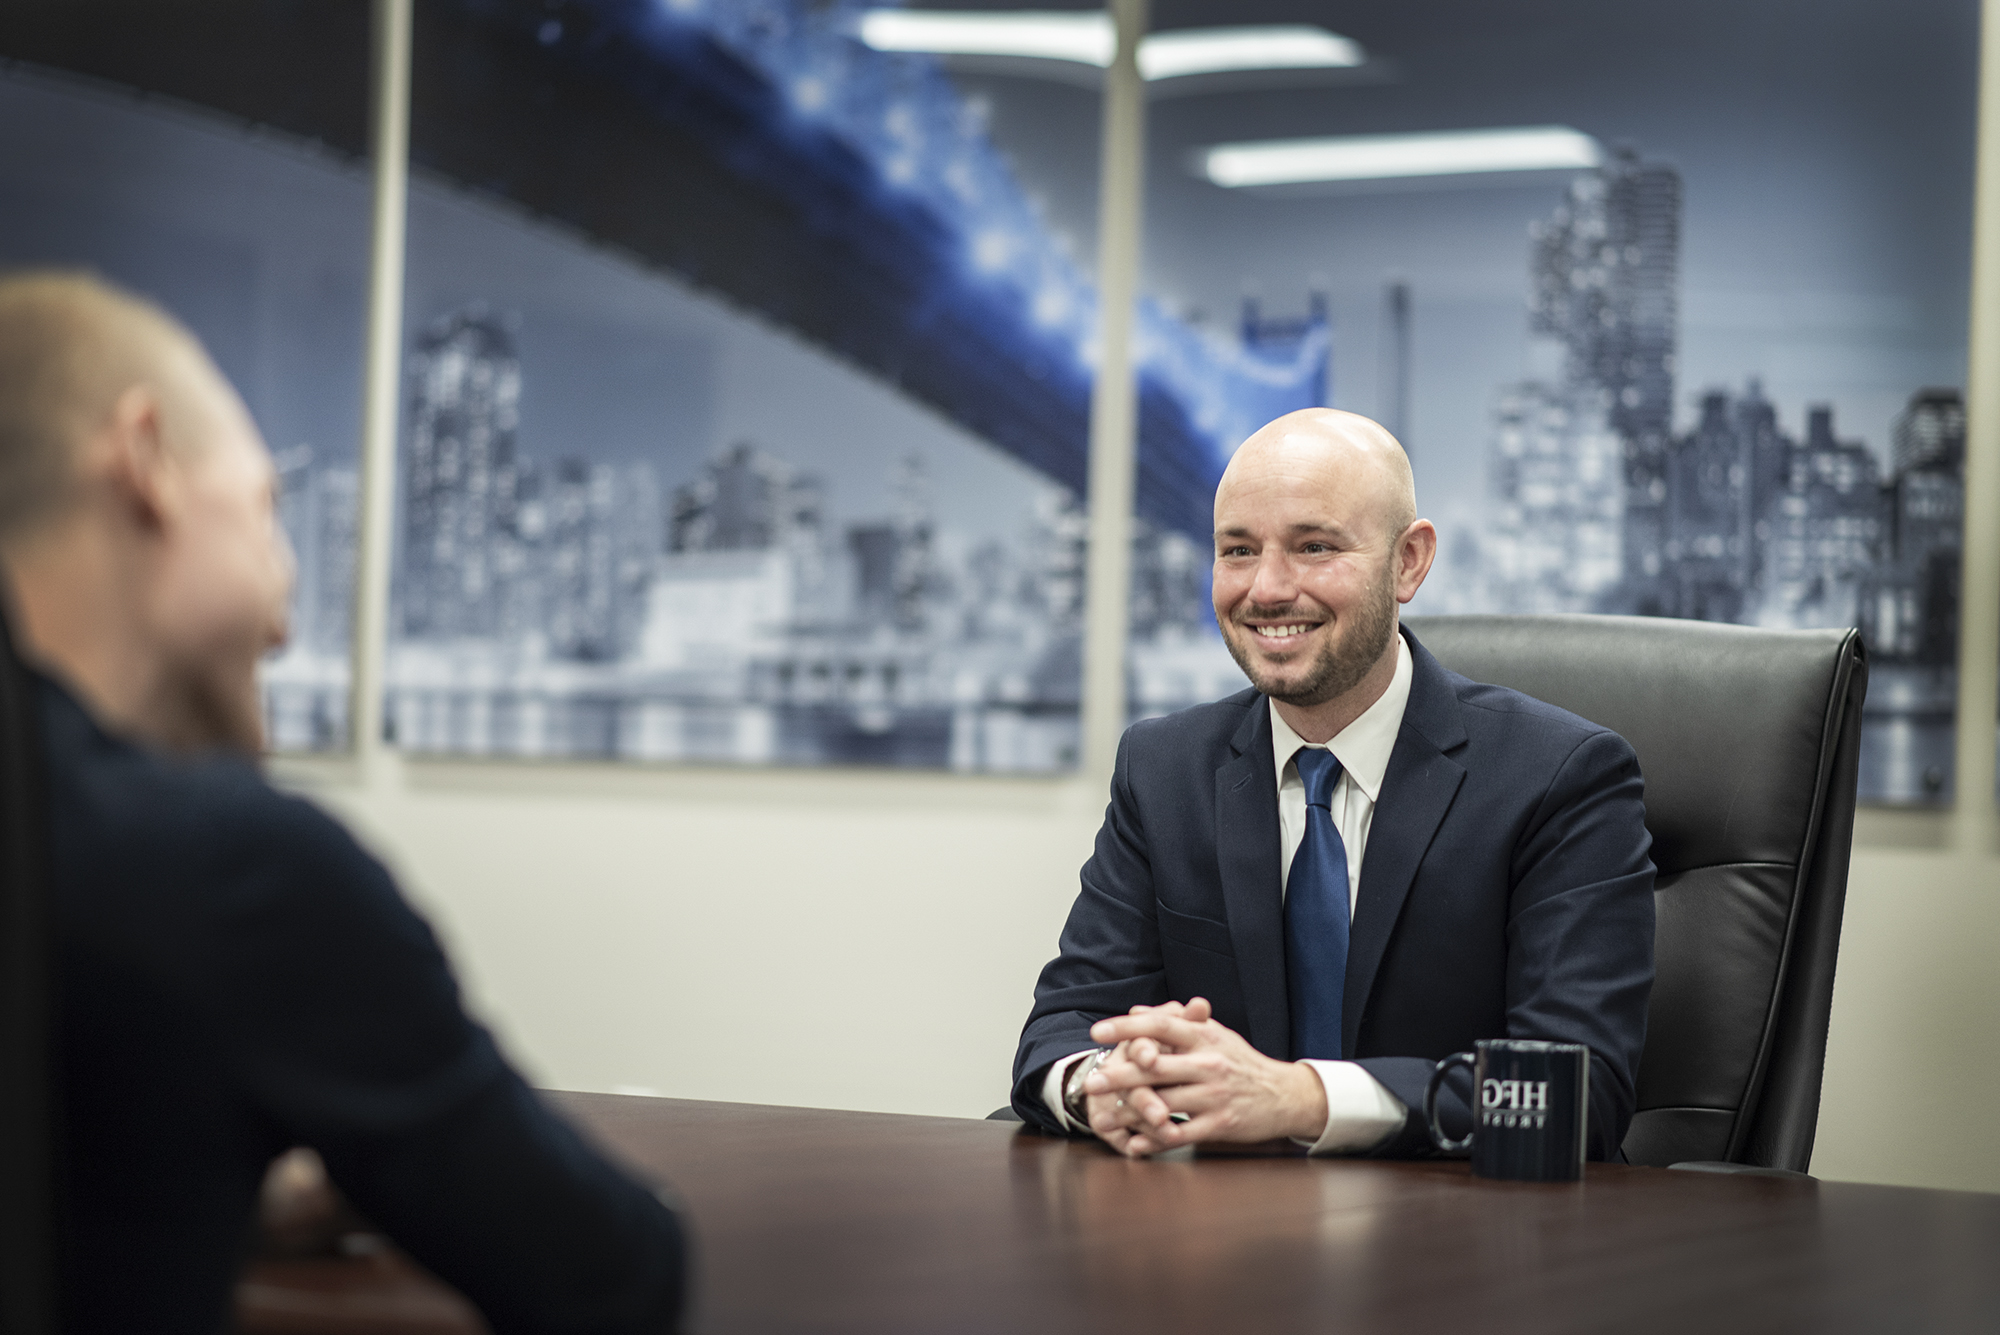 Photo of Private Banker, Andrew Bellon of Community First Bank and HFG Trust meeting with a client at a wooden table in large conference room.